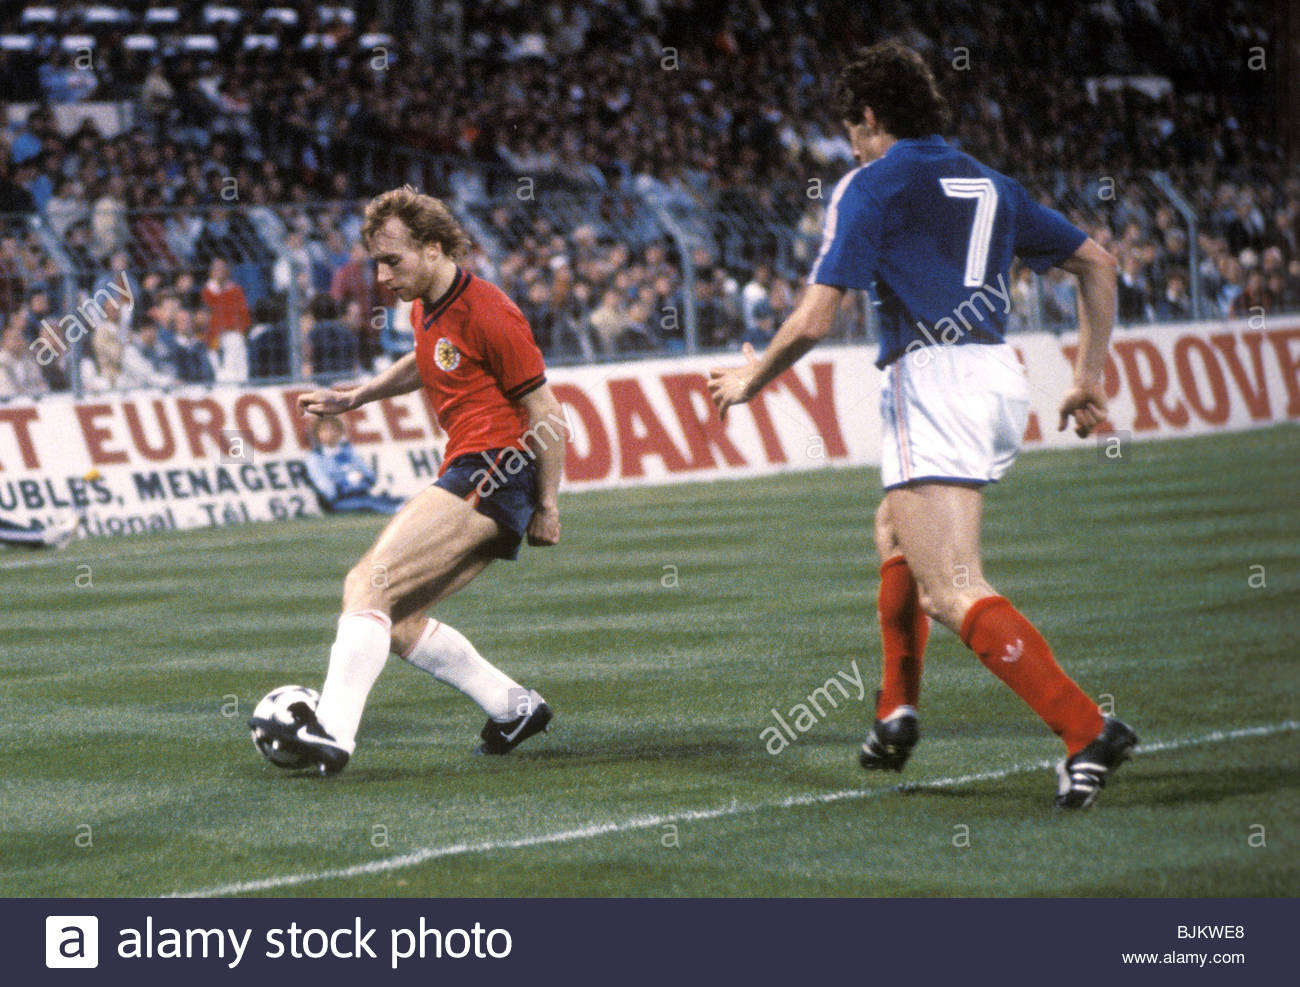 01/06/84 INTERNATIONAL FRIENDLY FRANCE V SCOTLAND (2-0) STADE VELODROME - MARSEILLE Scotland's Steve Archibald - Stock Image